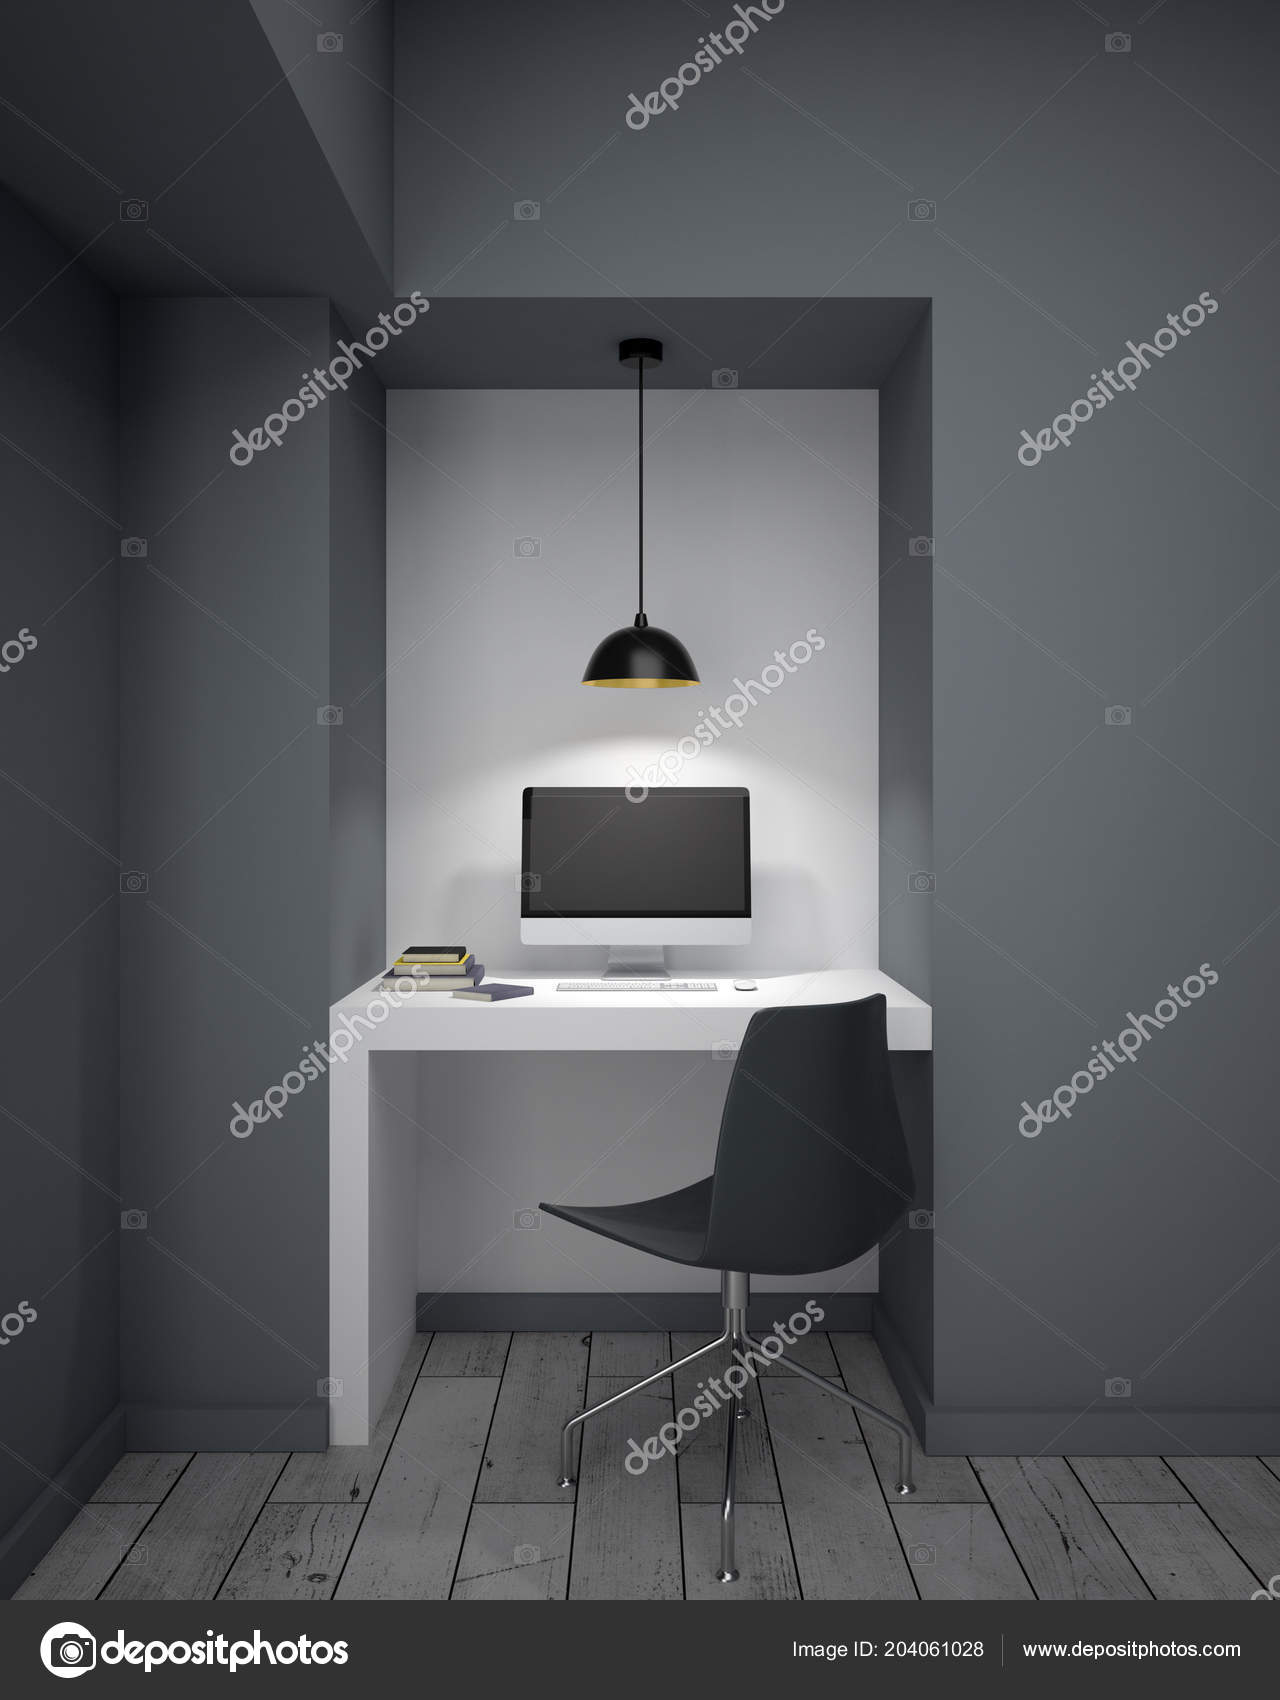 Image of: Mockup Black Computer Monitor White Desk Modern Room Grey Walls Stock Photo C Peshkova 204061028